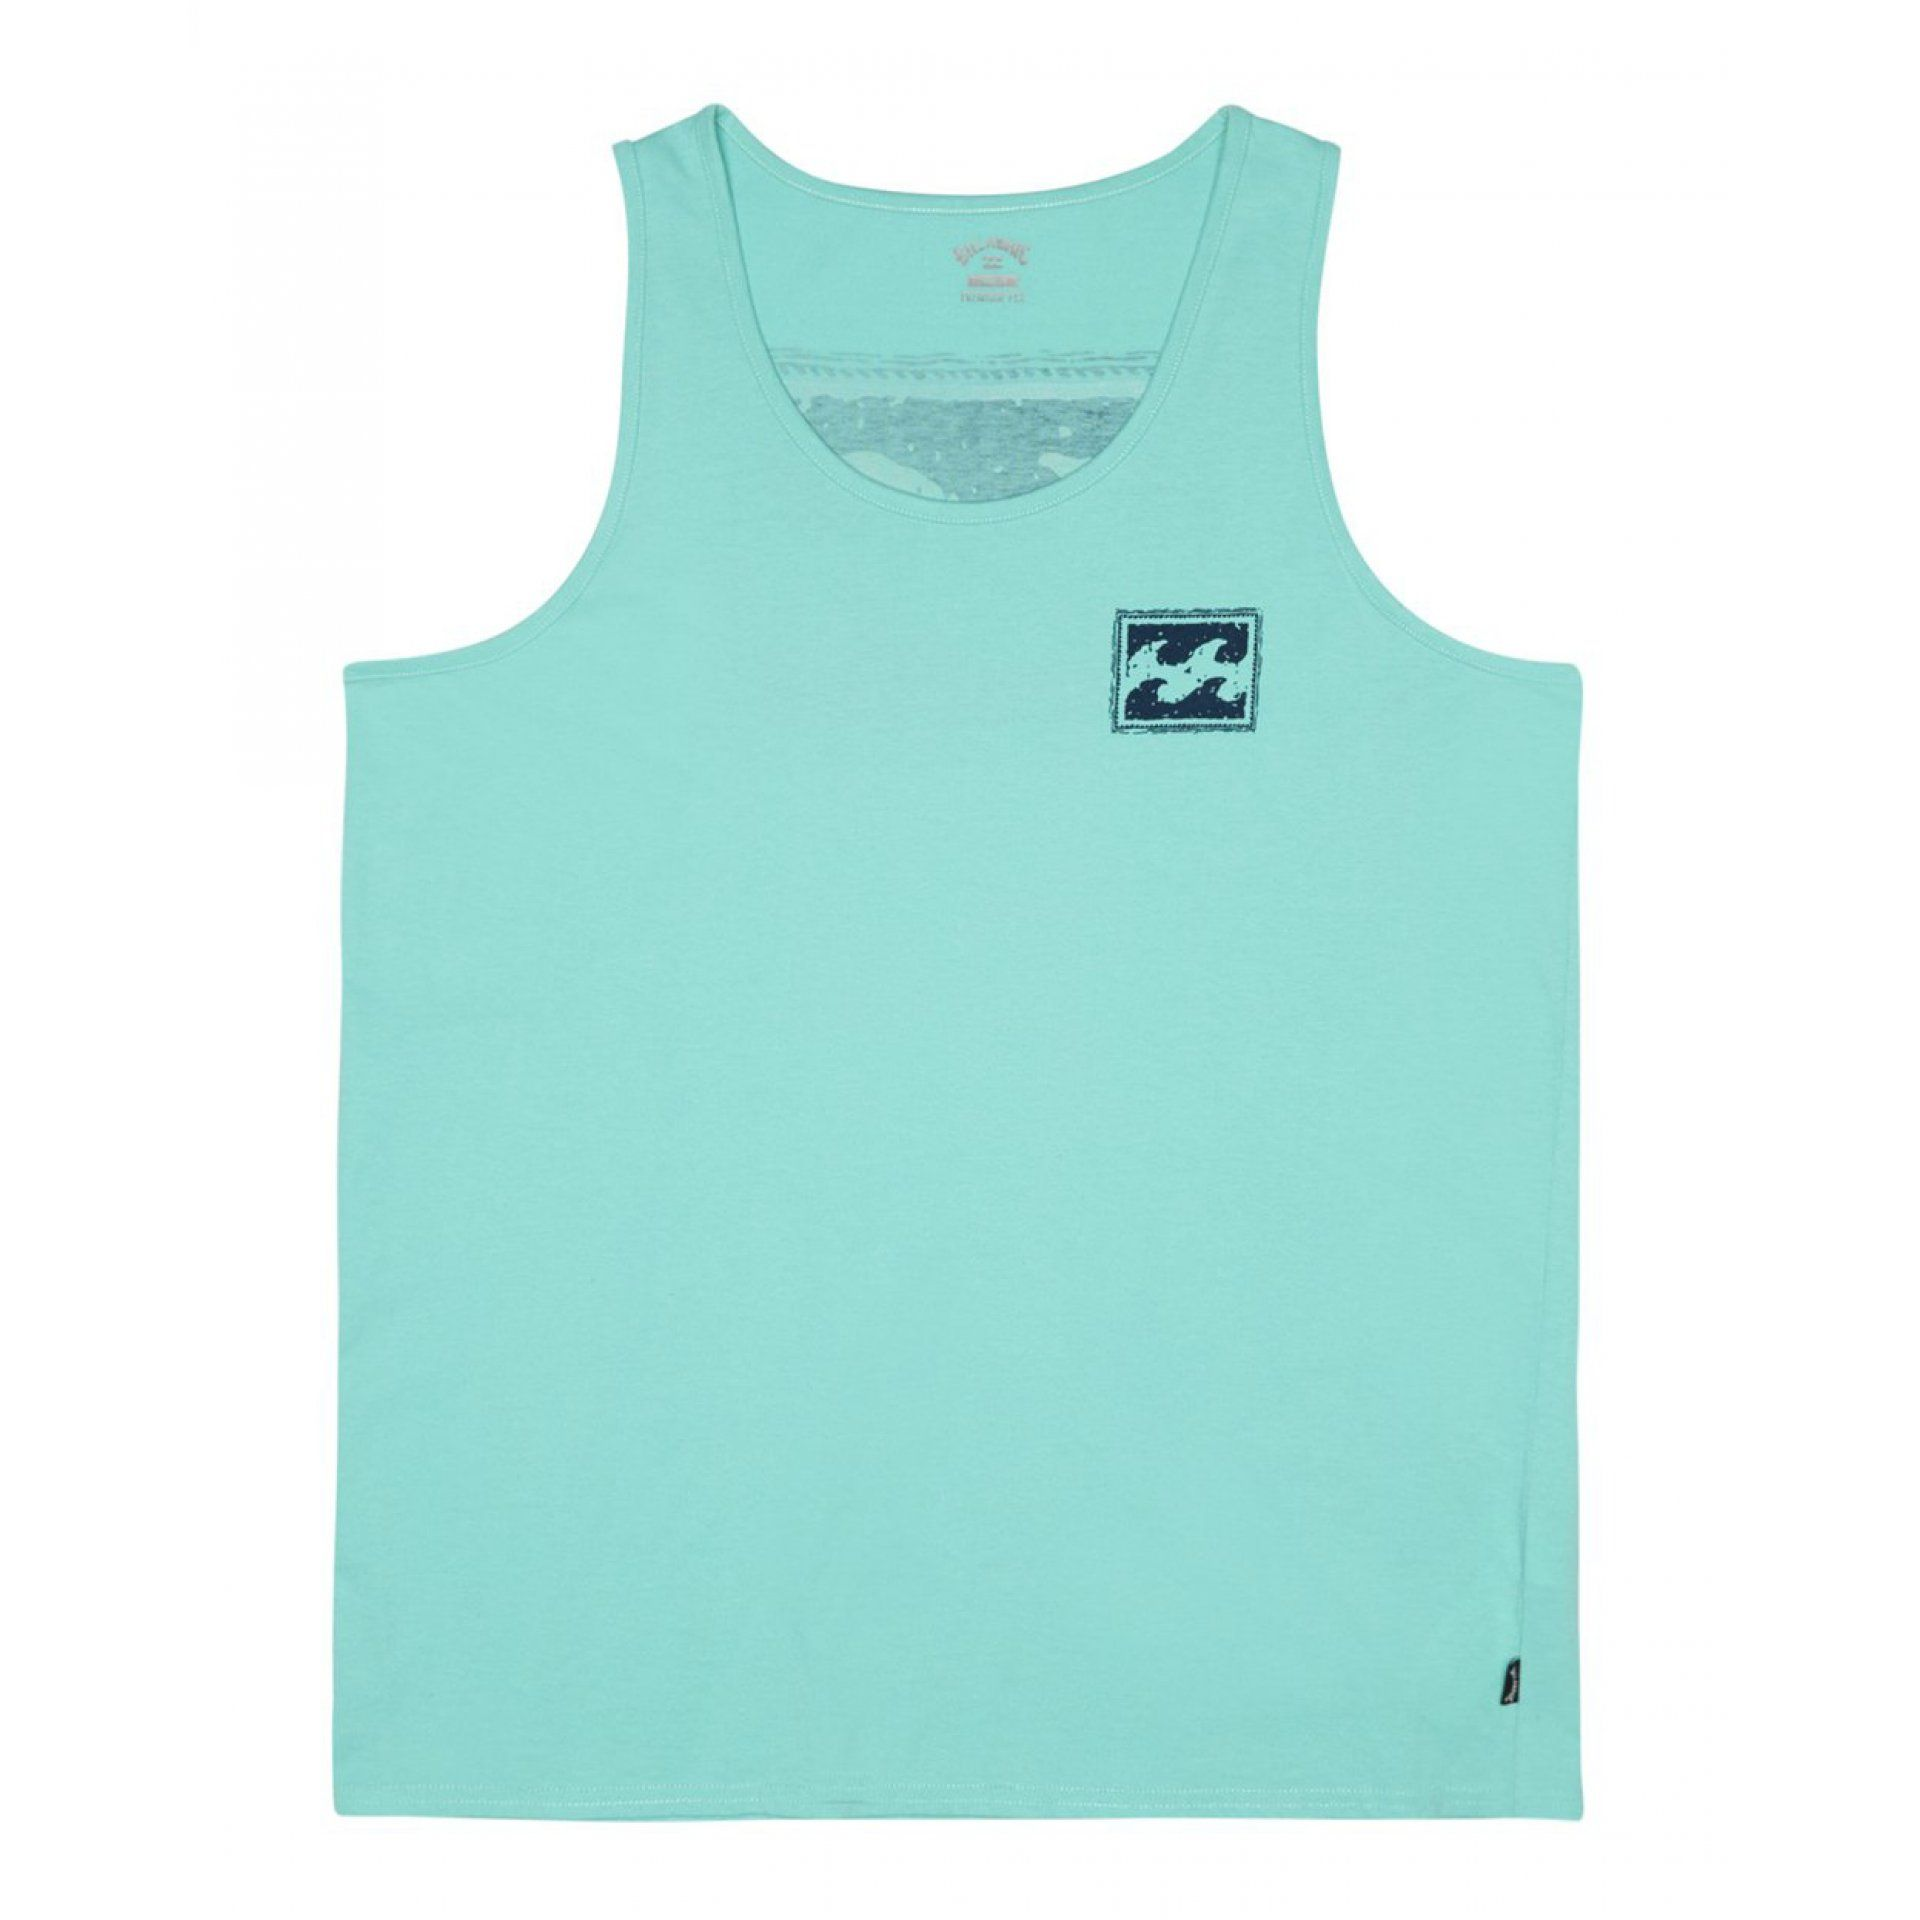 KOSZULKA BILLABONG WARCHILD S1SG08BIP0 1694 LIGHT AQUA